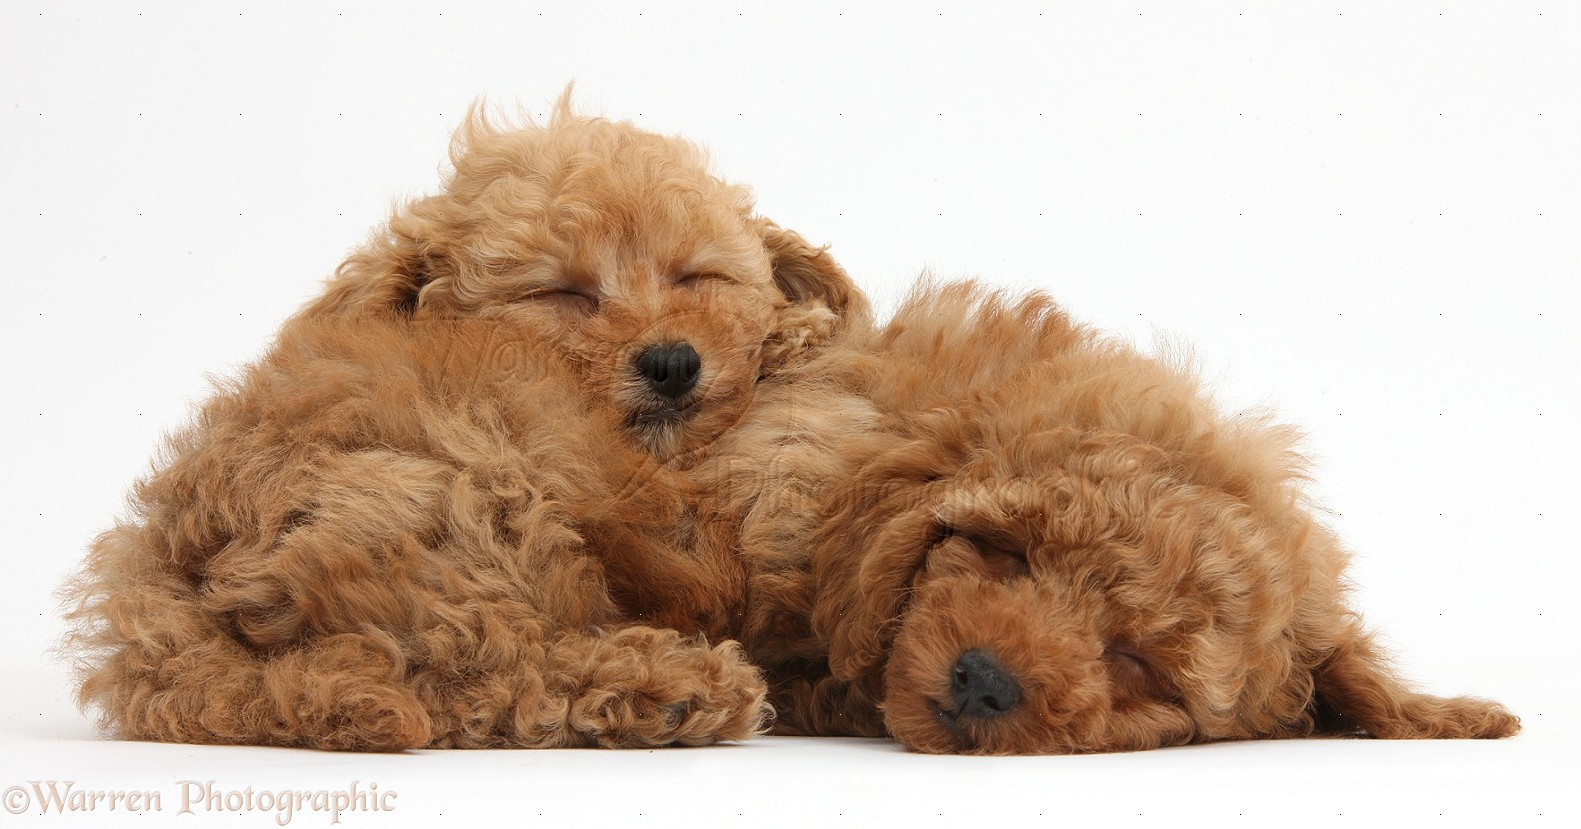 17423573 as well 38700 Cute Red Toy Poodle Puppy And Rabbit together with Havanese 70087 as well carlidavidson as well Sheepadoodle. on poodle puppies